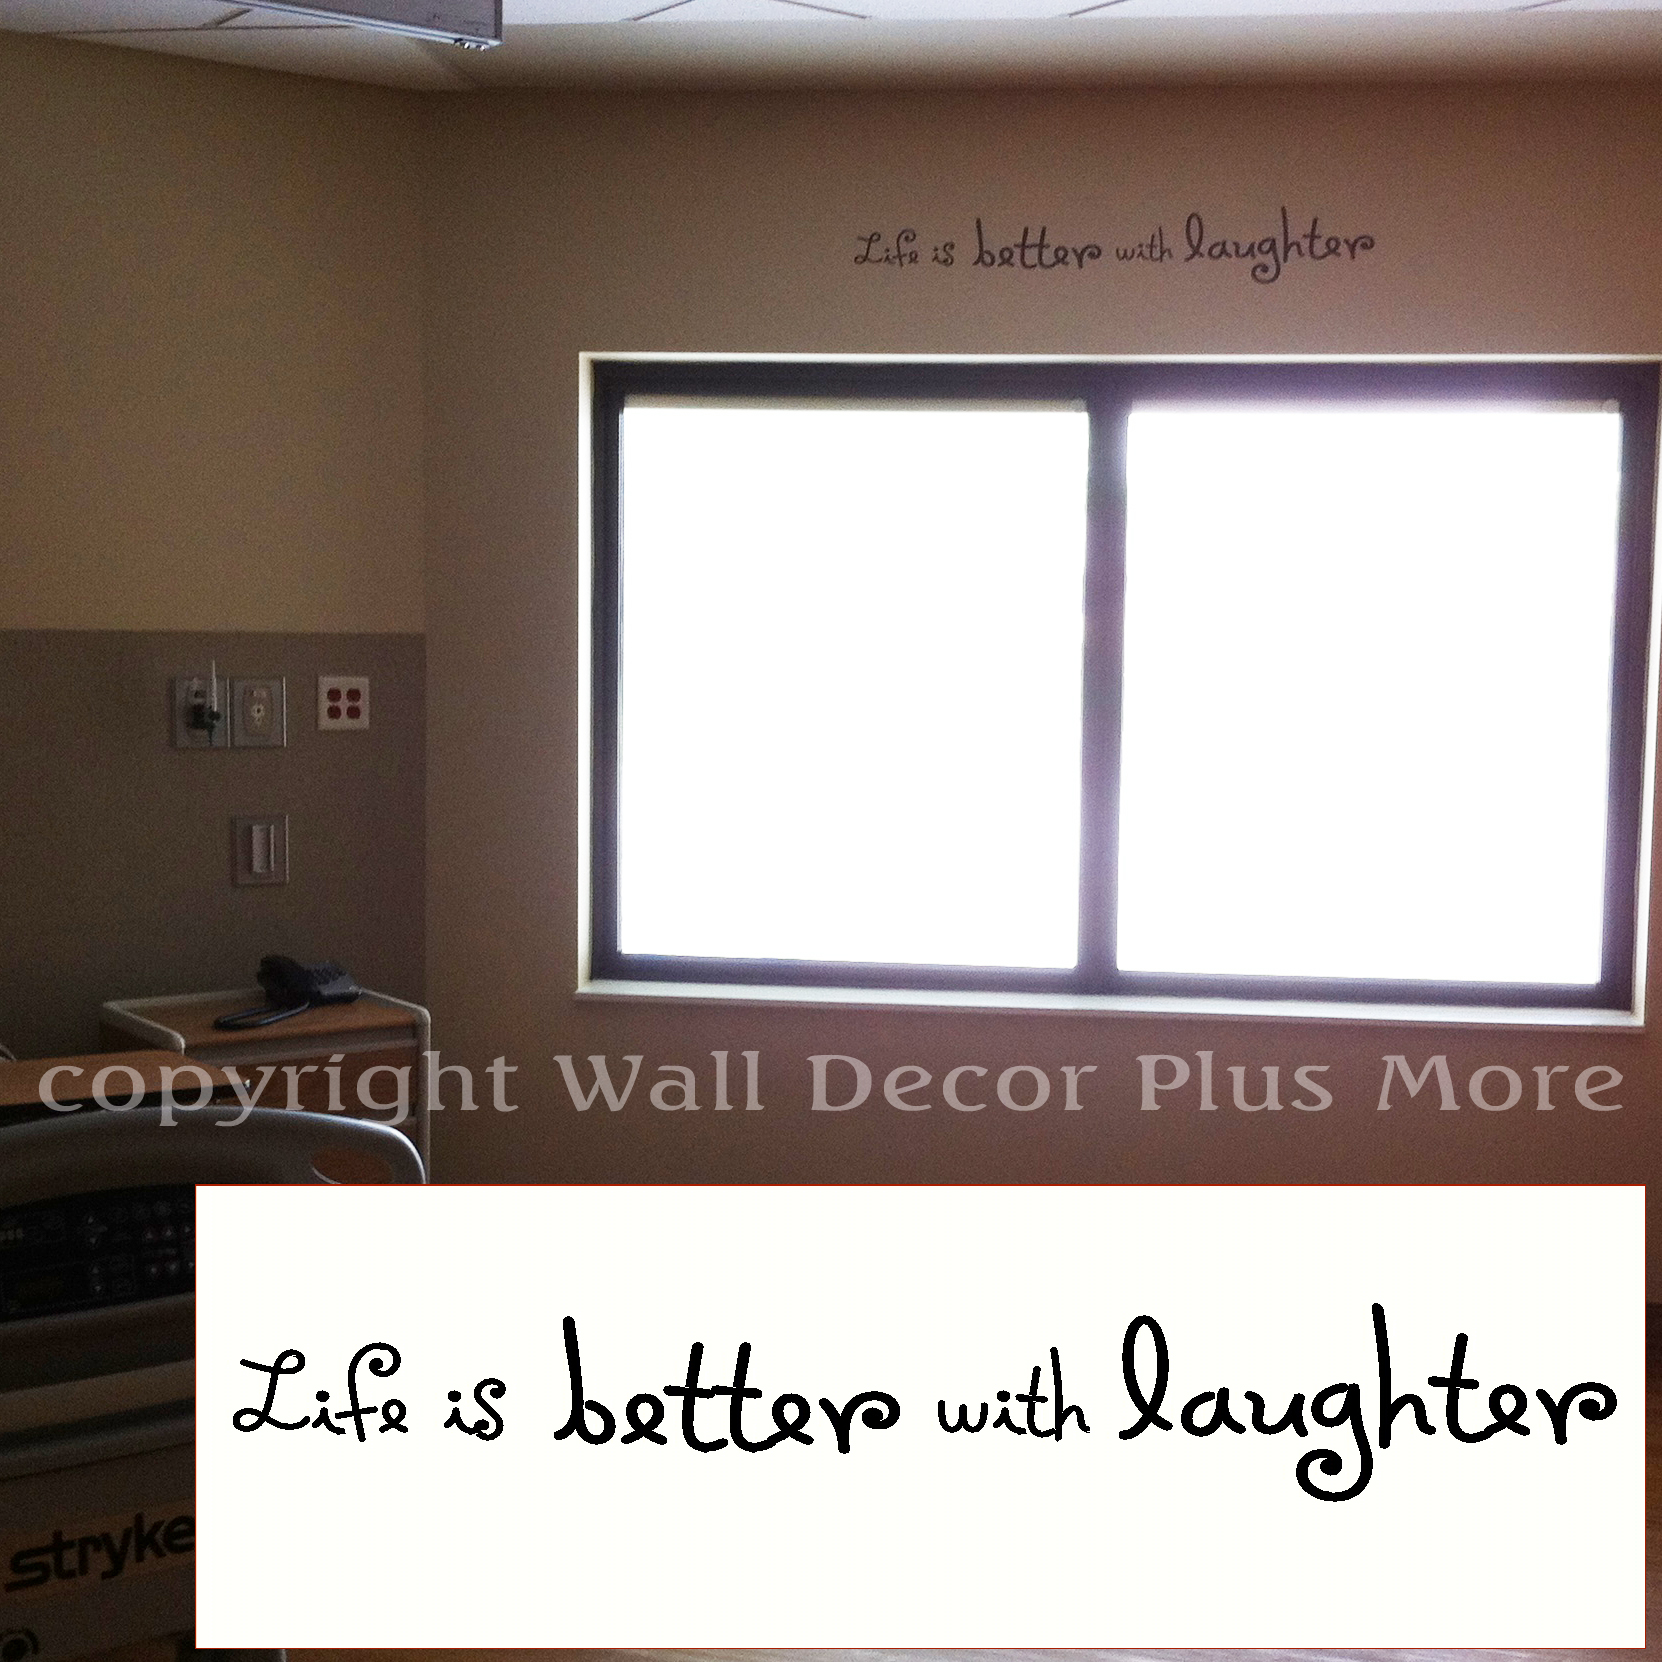 Wall Decor Plus More : Helping out the local hospital with new wall decals